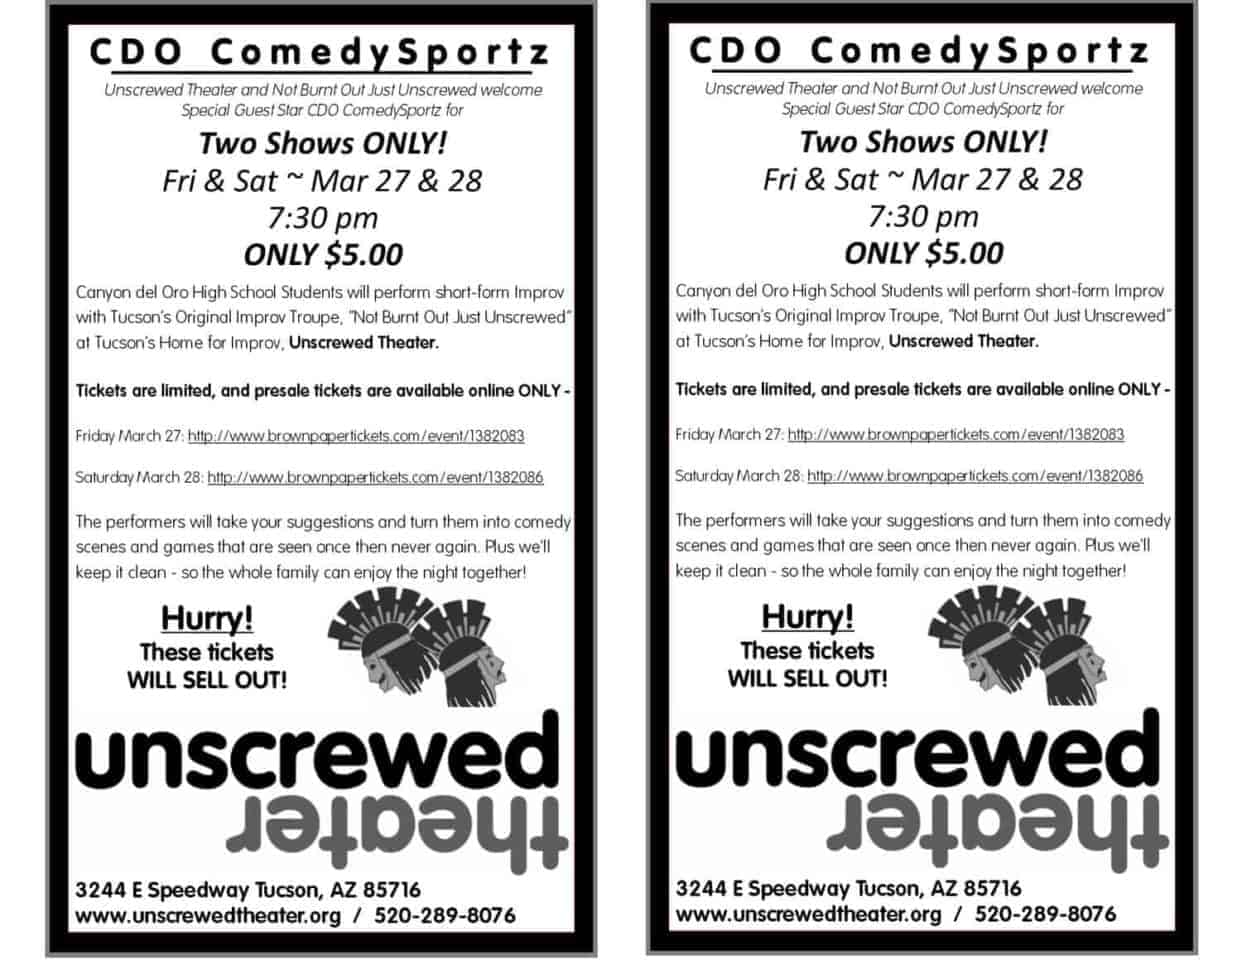 CDO Comedysports and Unscrewed Theater